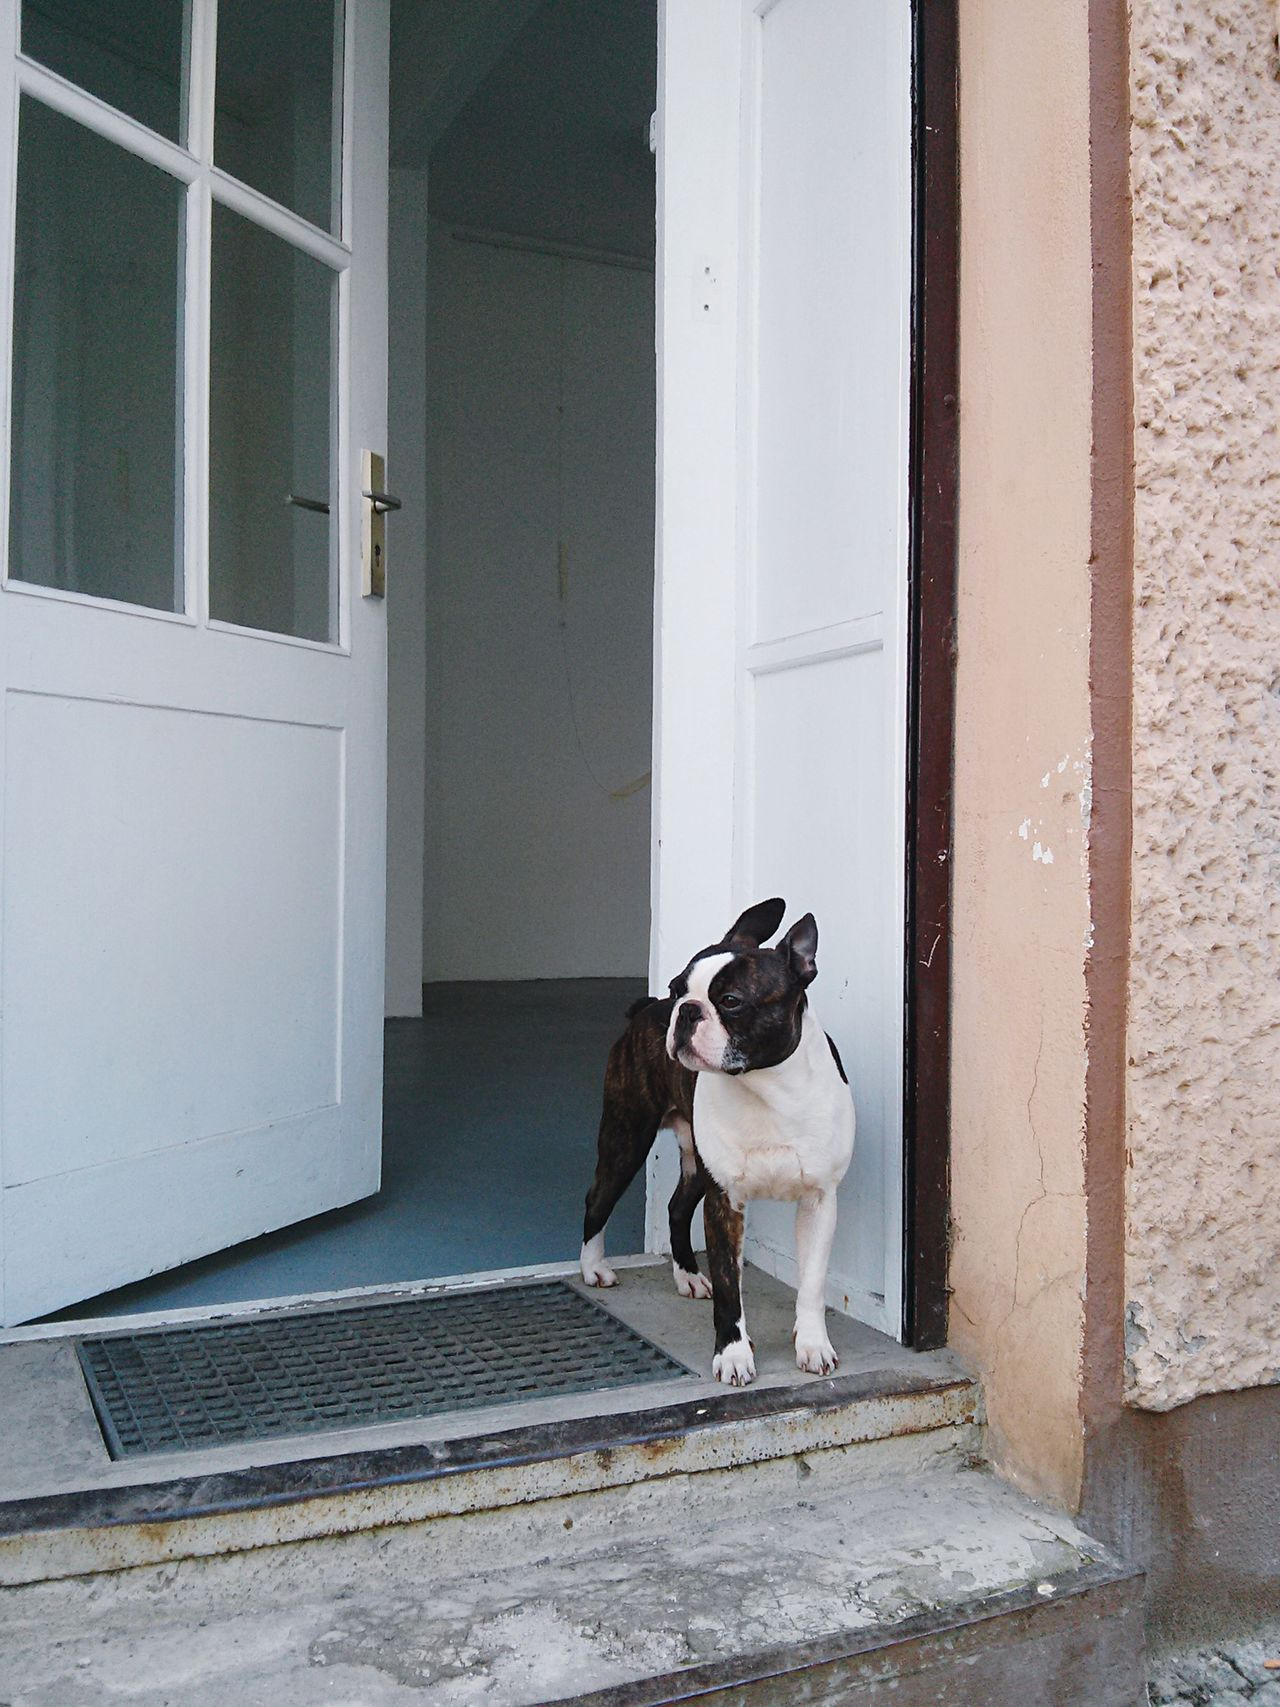 Beautiful stock photos of french bulldog, Animal Themes, Architecture, Berlin, Building Exterior